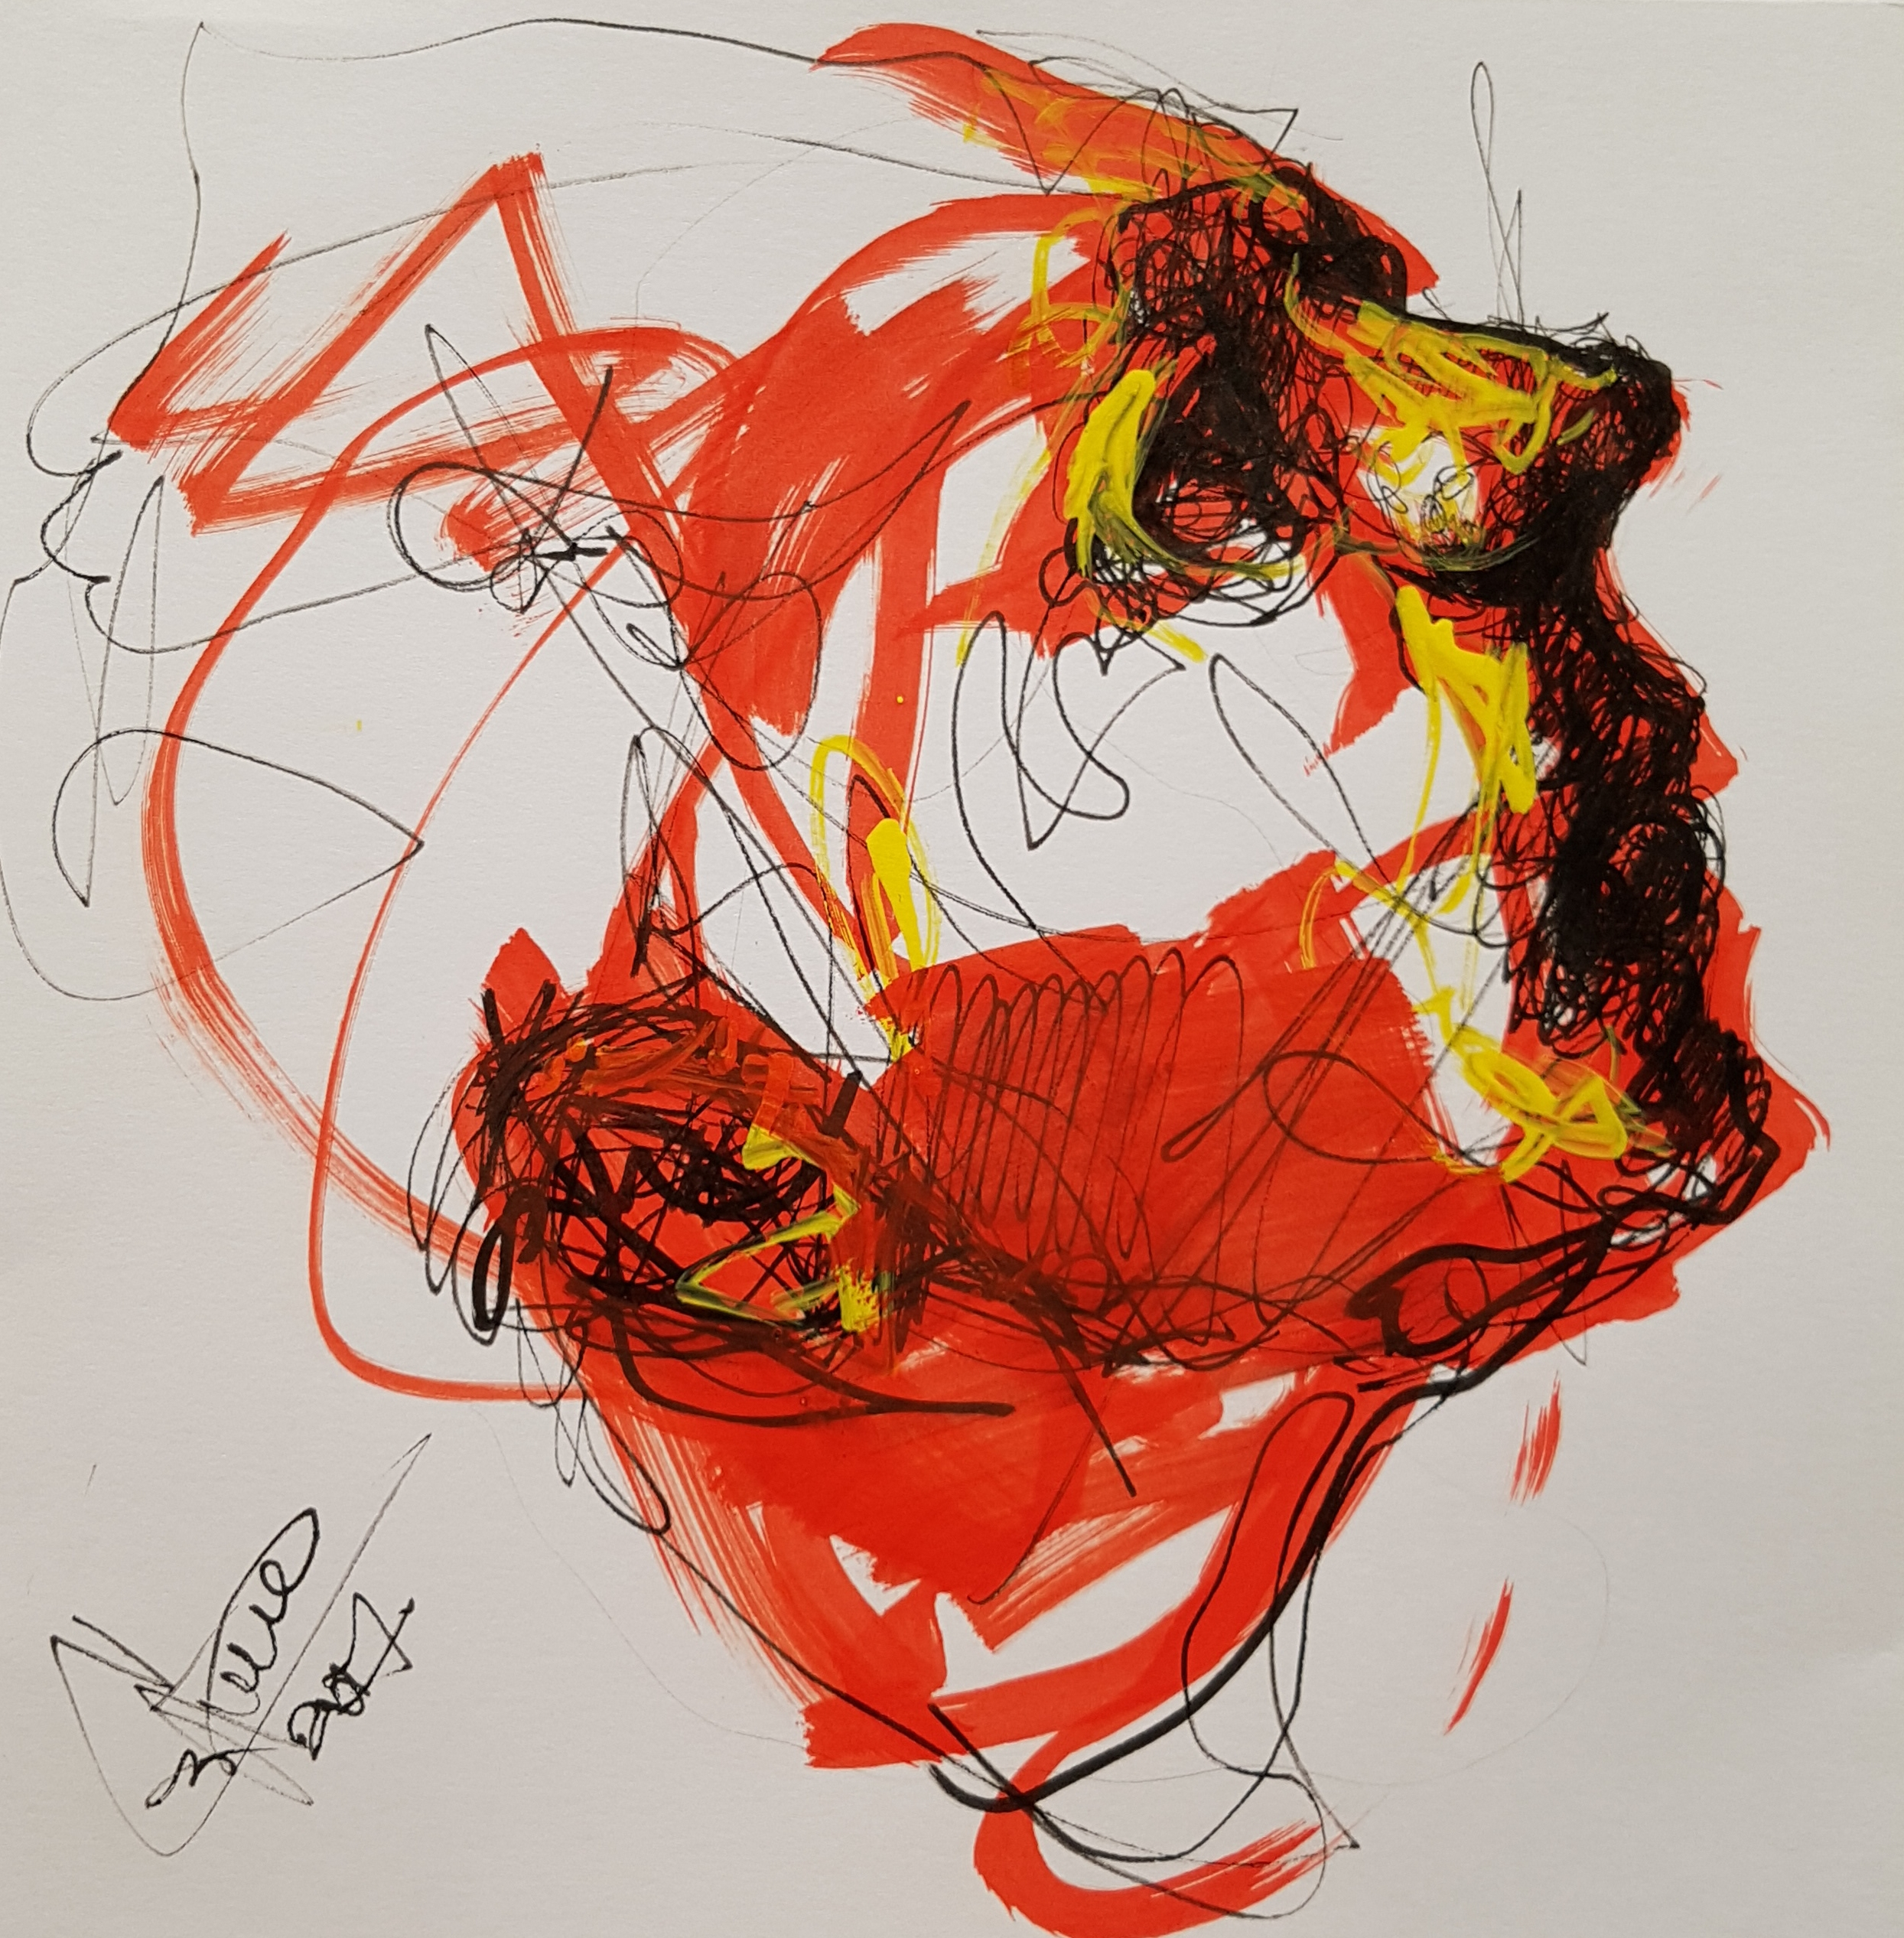 drawing of person screaming to the air, sketch on mmarker